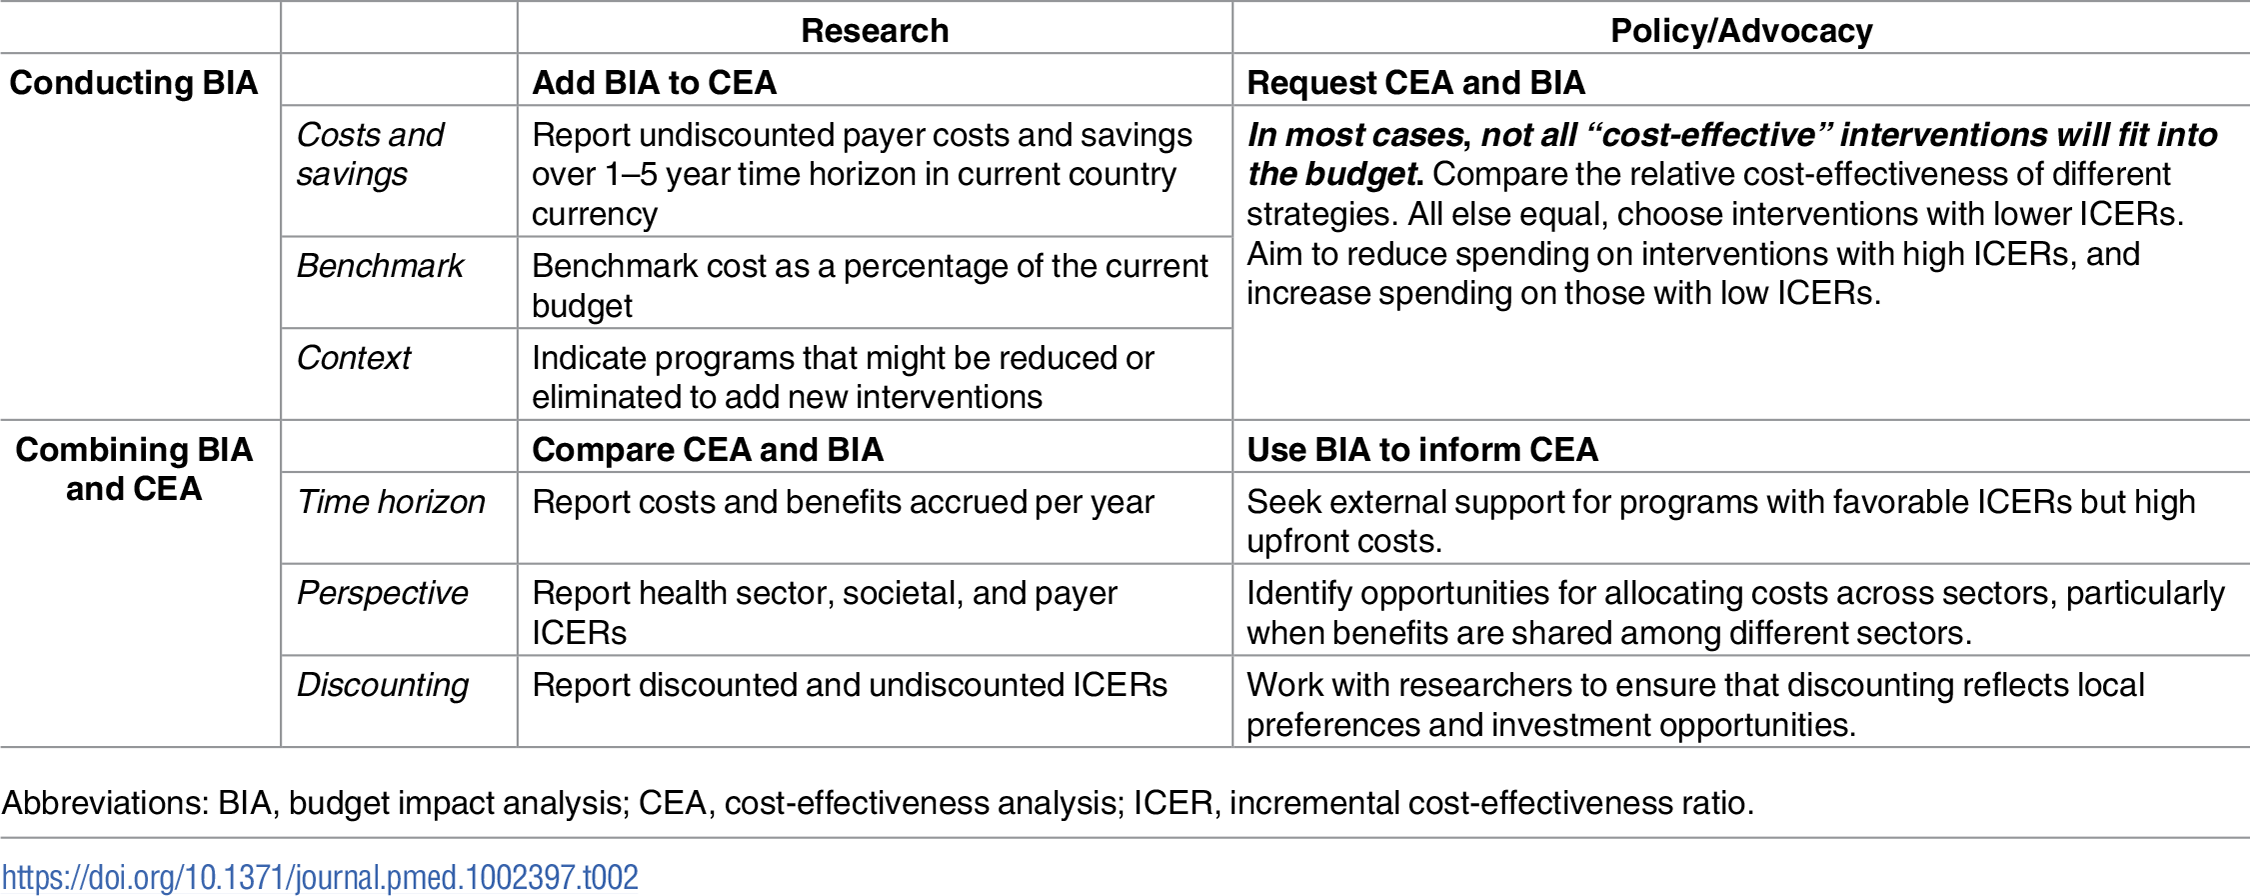 Research and policy/advocacy recommendations for CEA and BIA.